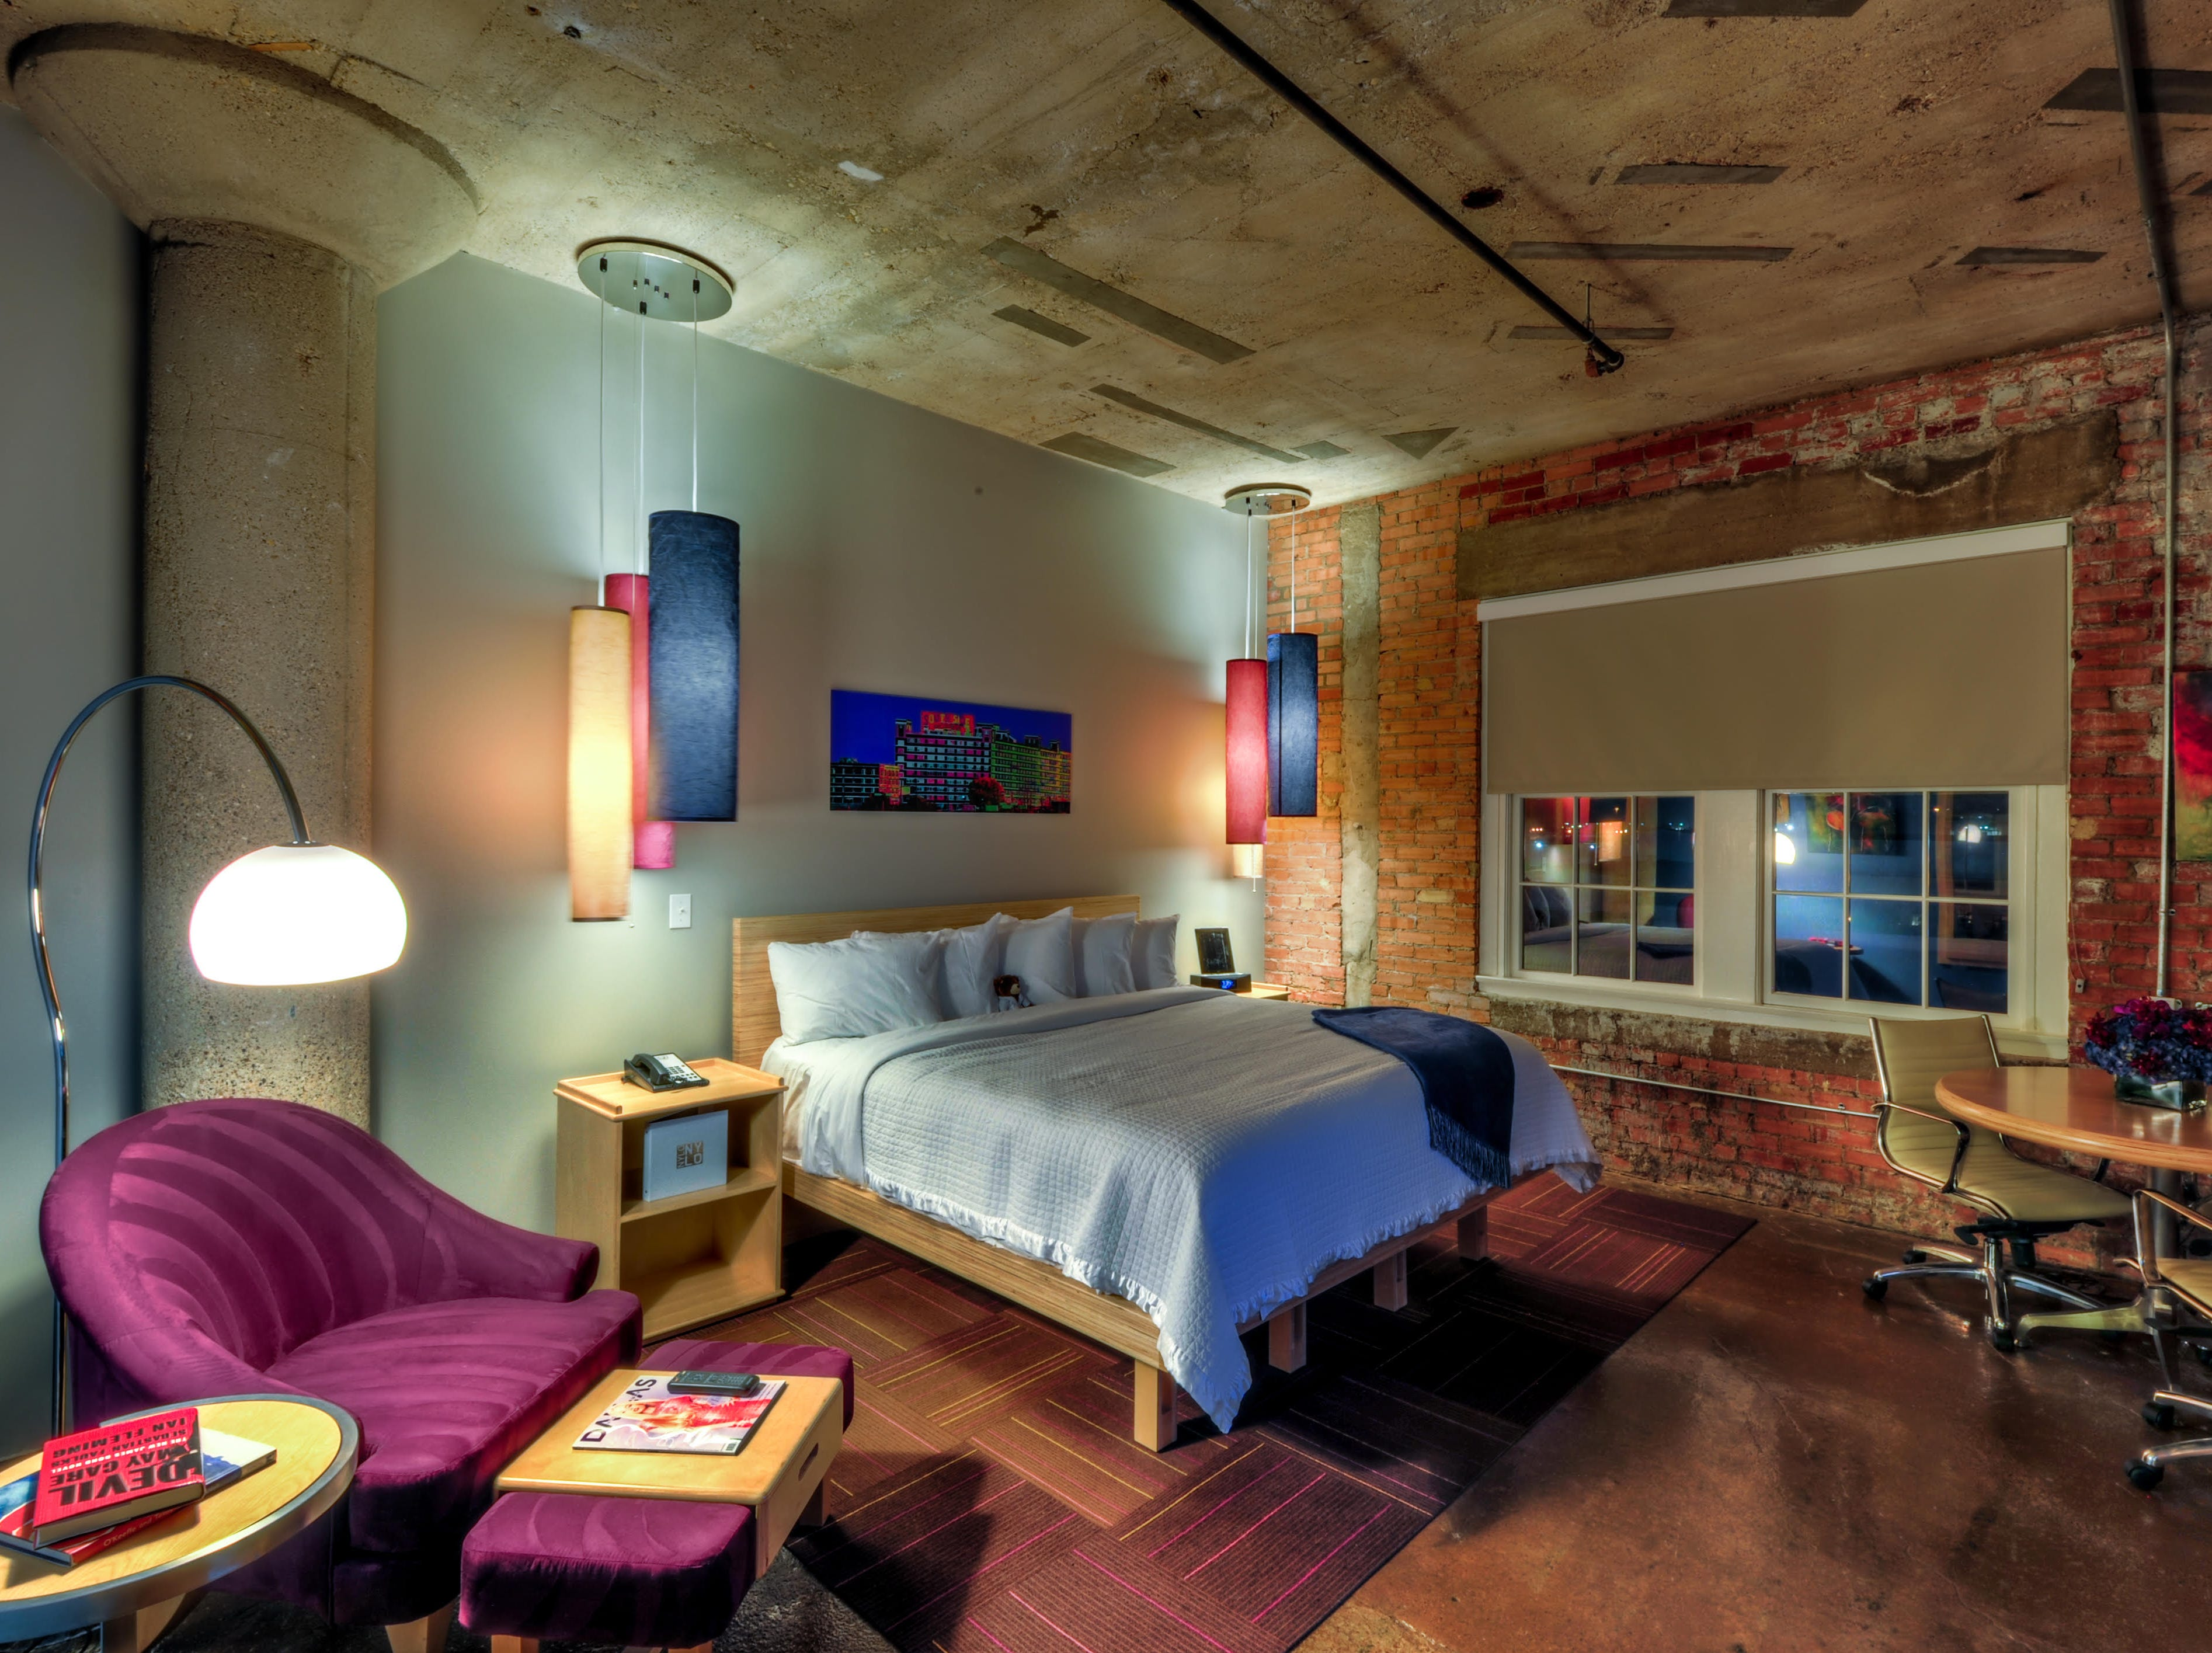 Guestrooms and suites at the CANVAS Hotel Dallas are loft-like with 10- to 15-foot high ceilings, concrete flooring, exposed brick, and industrial elements and fixtures.